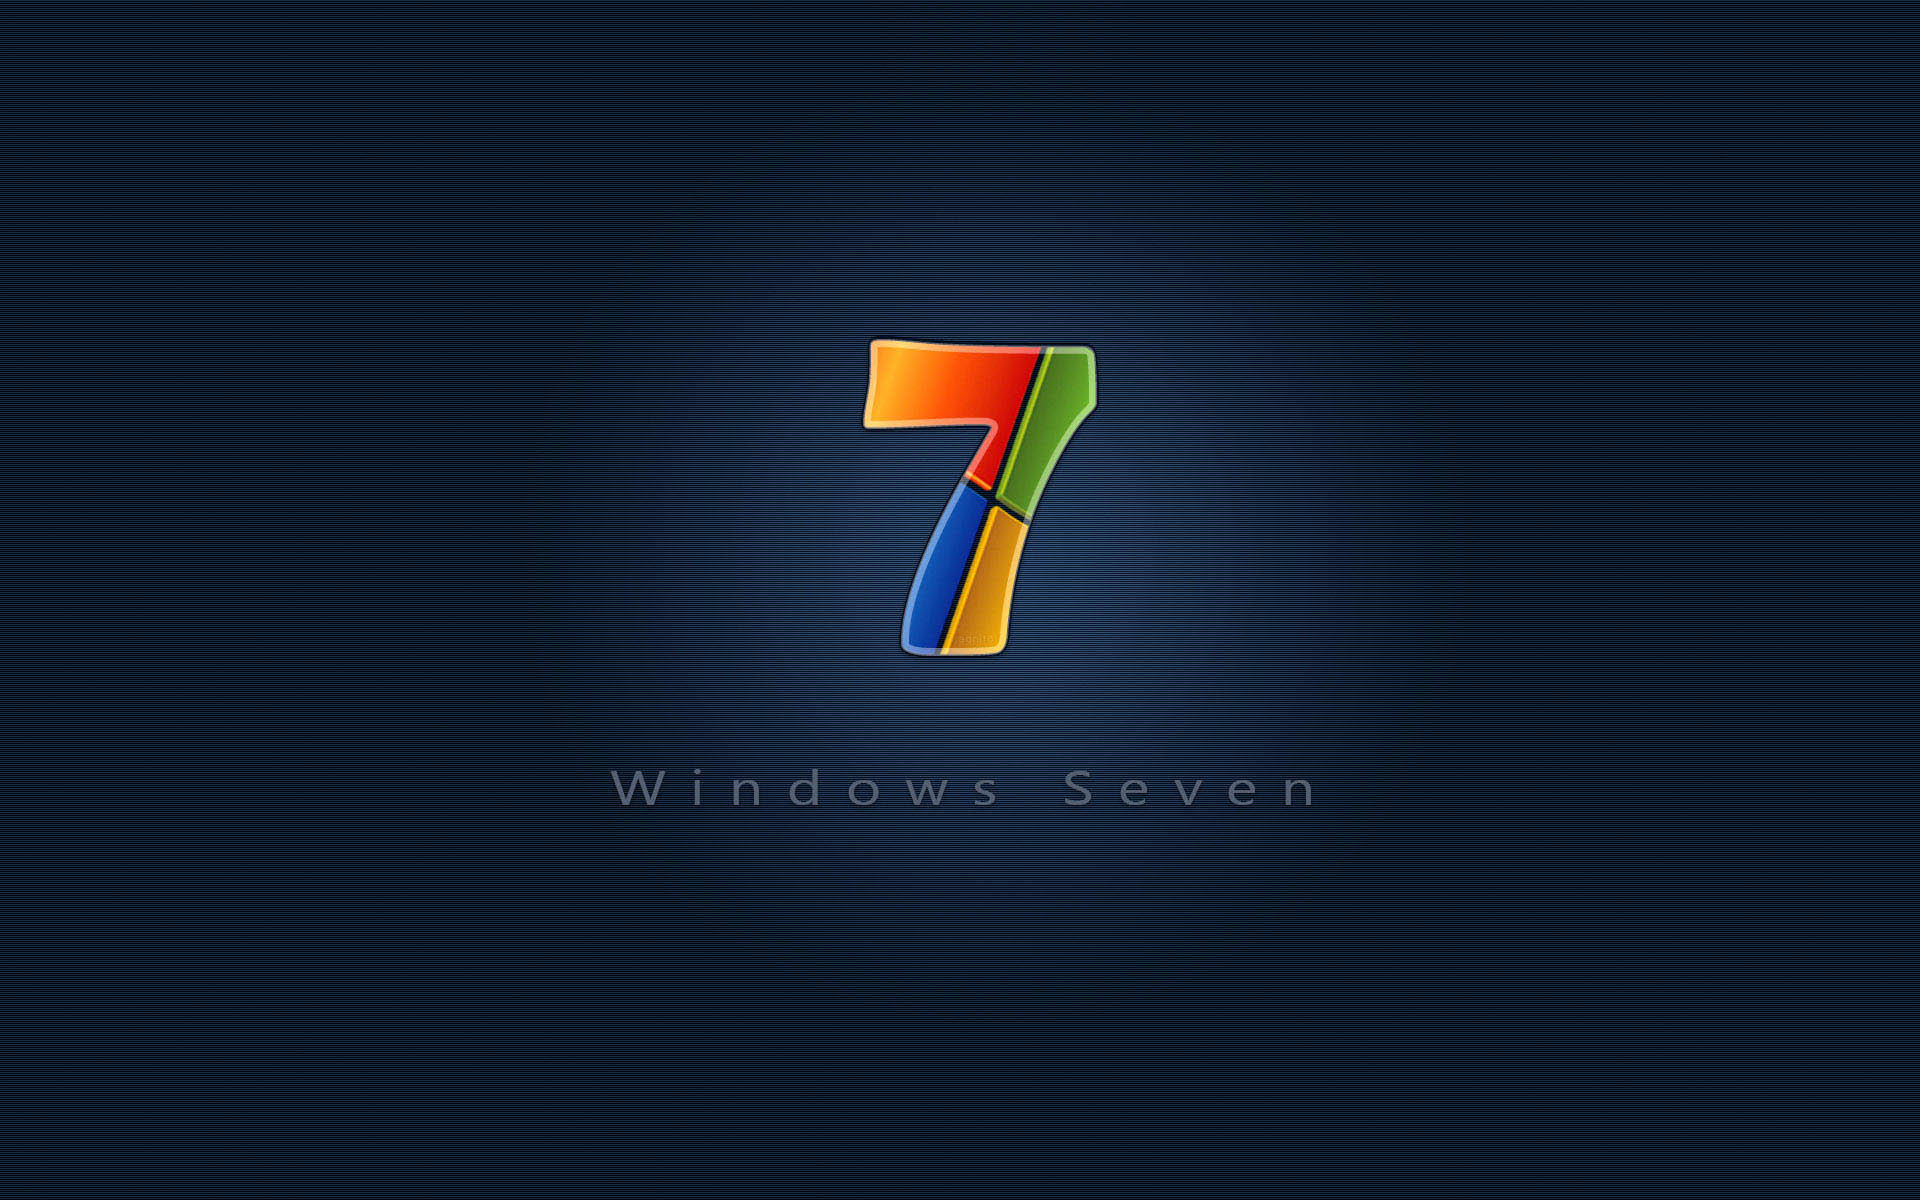 HQ Windows 7 Ultimate 42 Wallpaper   HQ Wallpapers 1920x1200